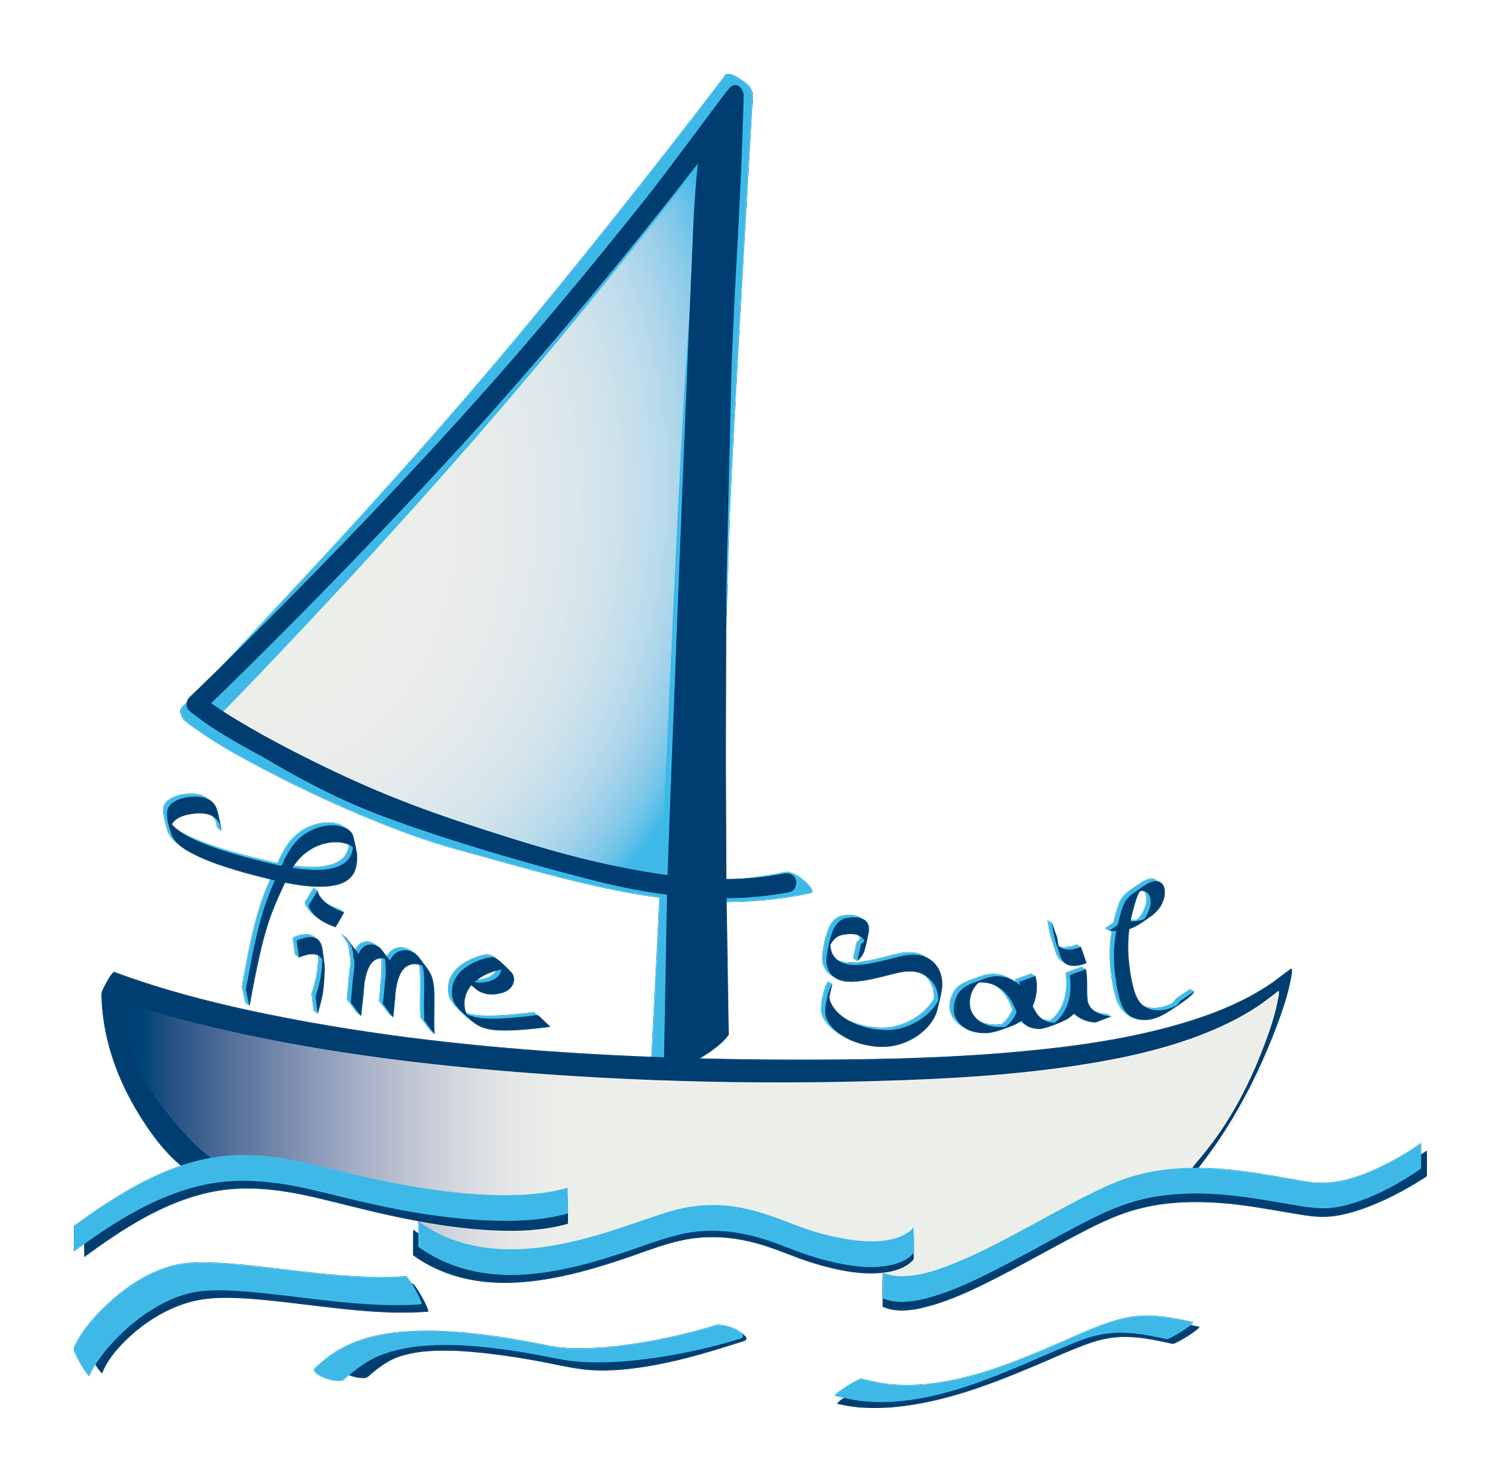 time4sail LOGO TRANSPARENT WEB - Segel Schnuppertörn